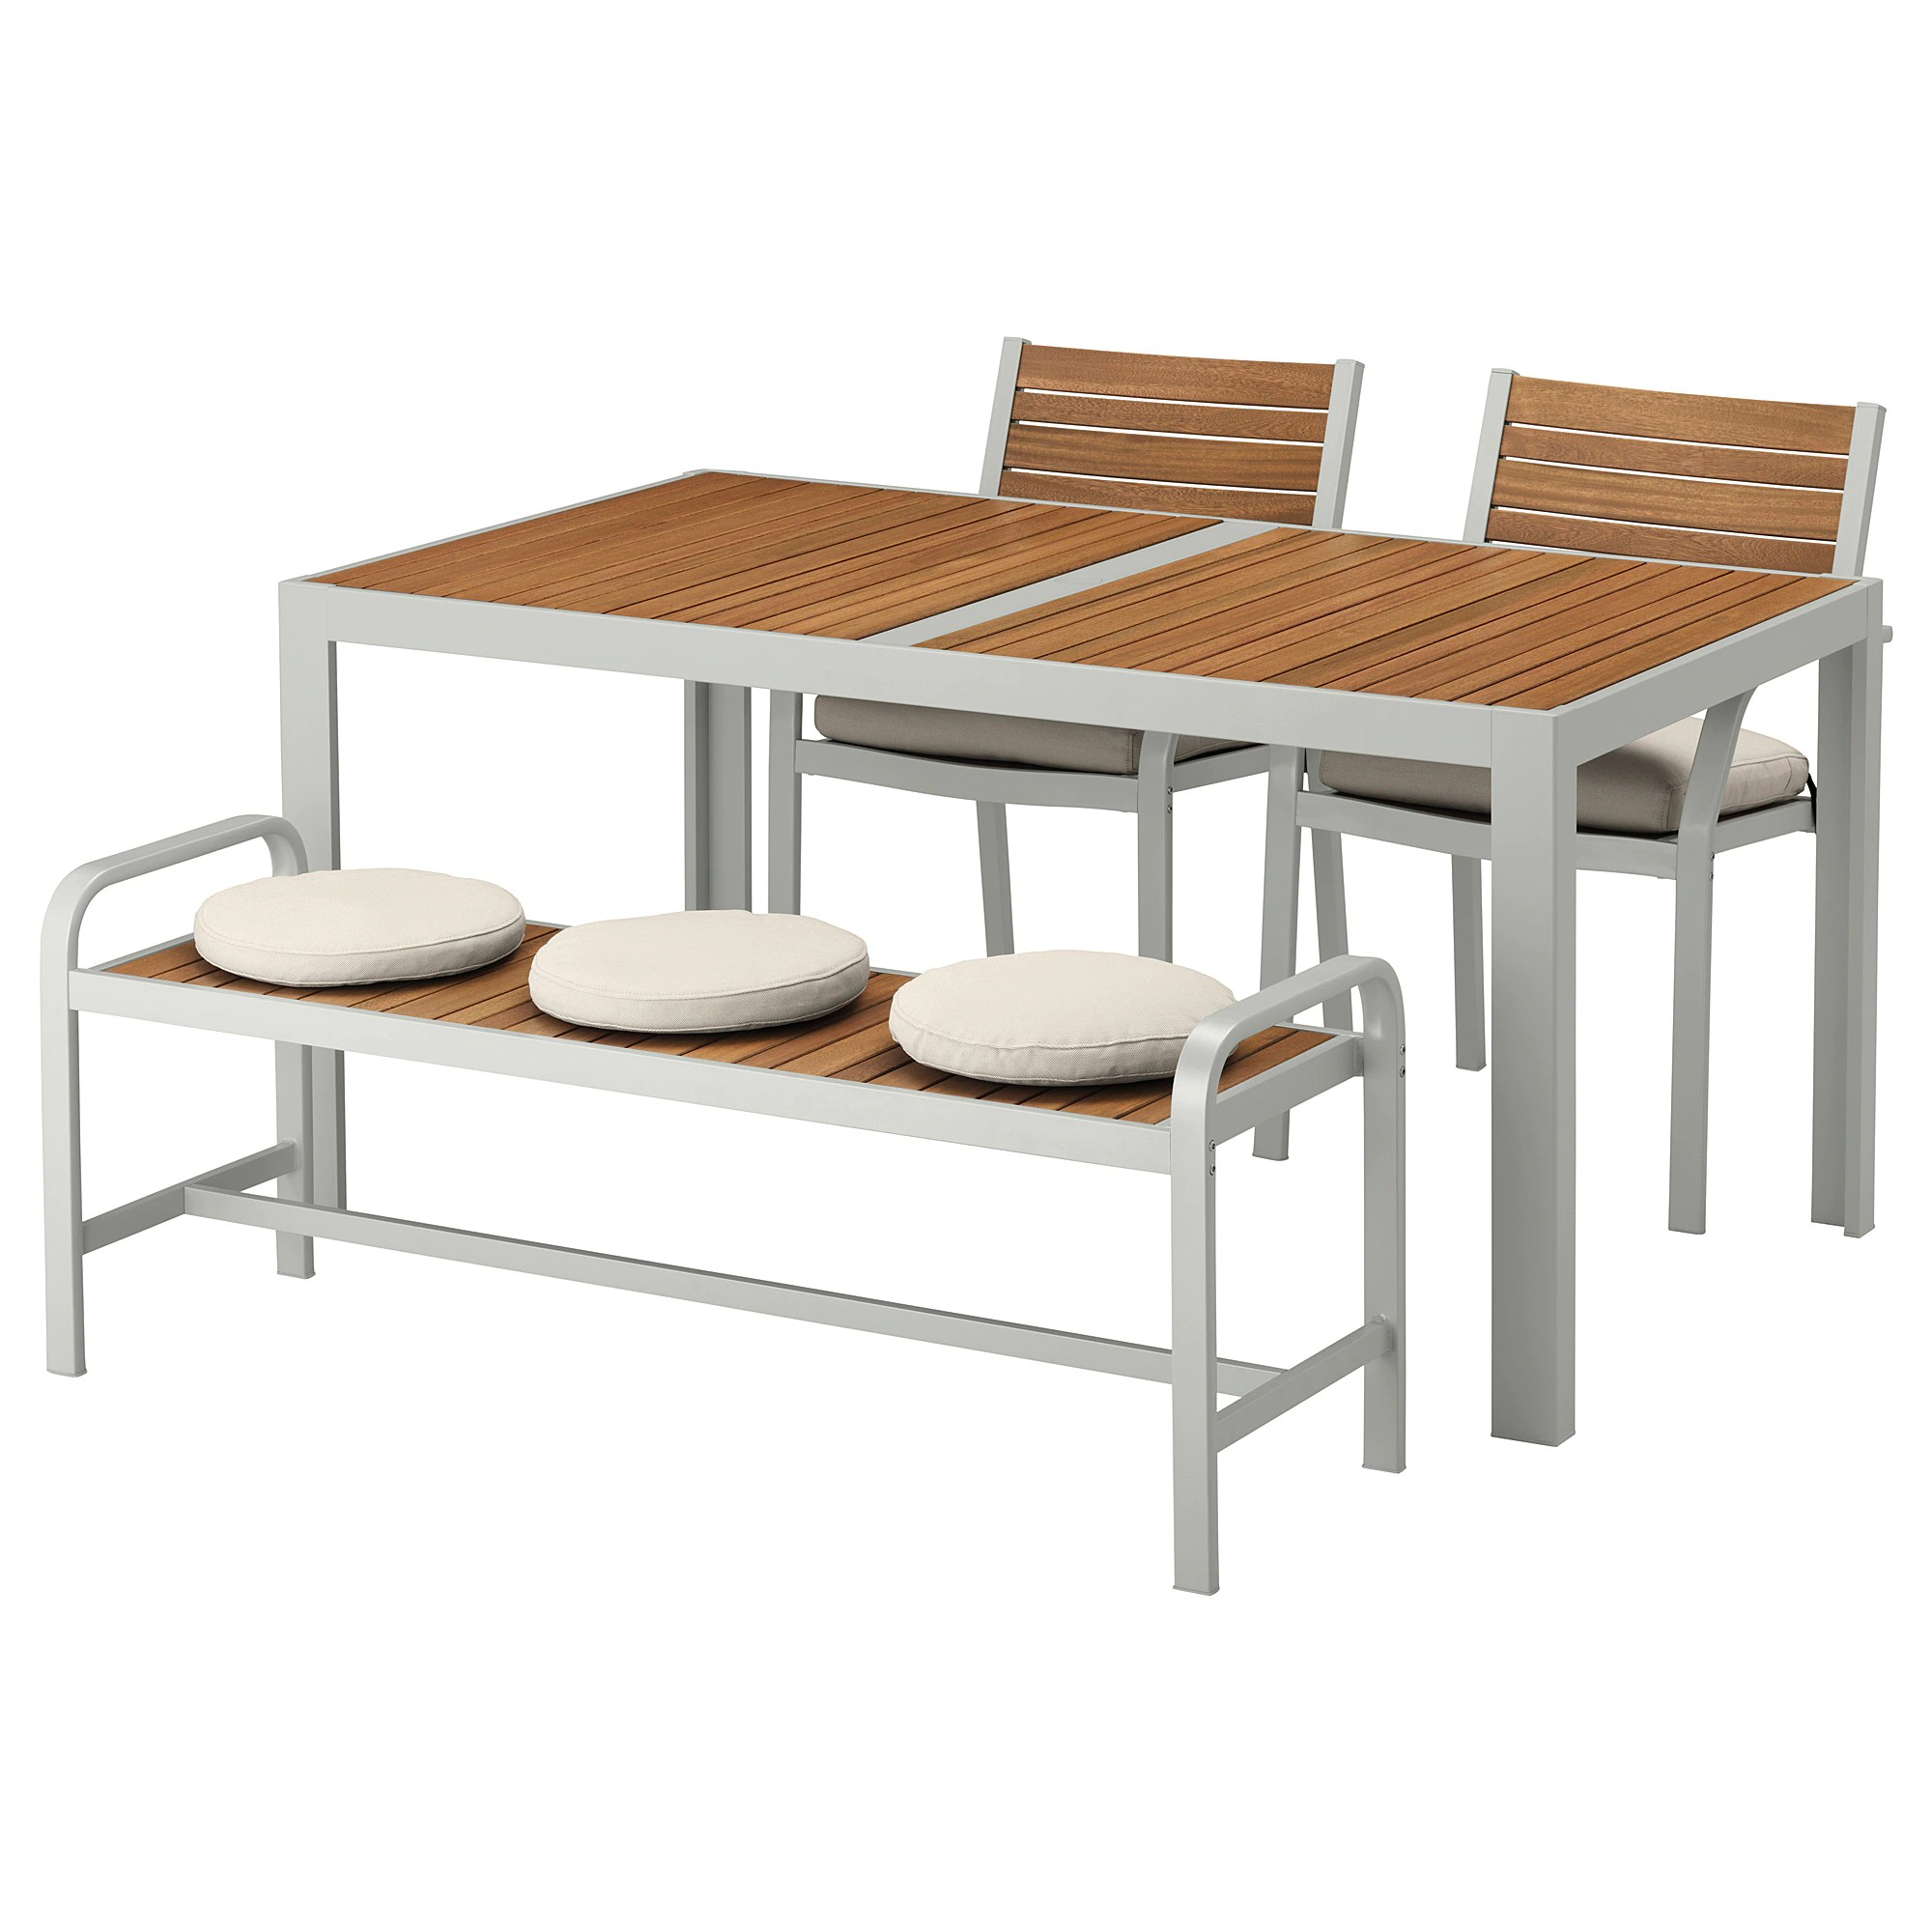 Ikea Outdoor Furniture SjÄlland Table 2 Chairs And Bench Outdoor Light Brown Light Gray